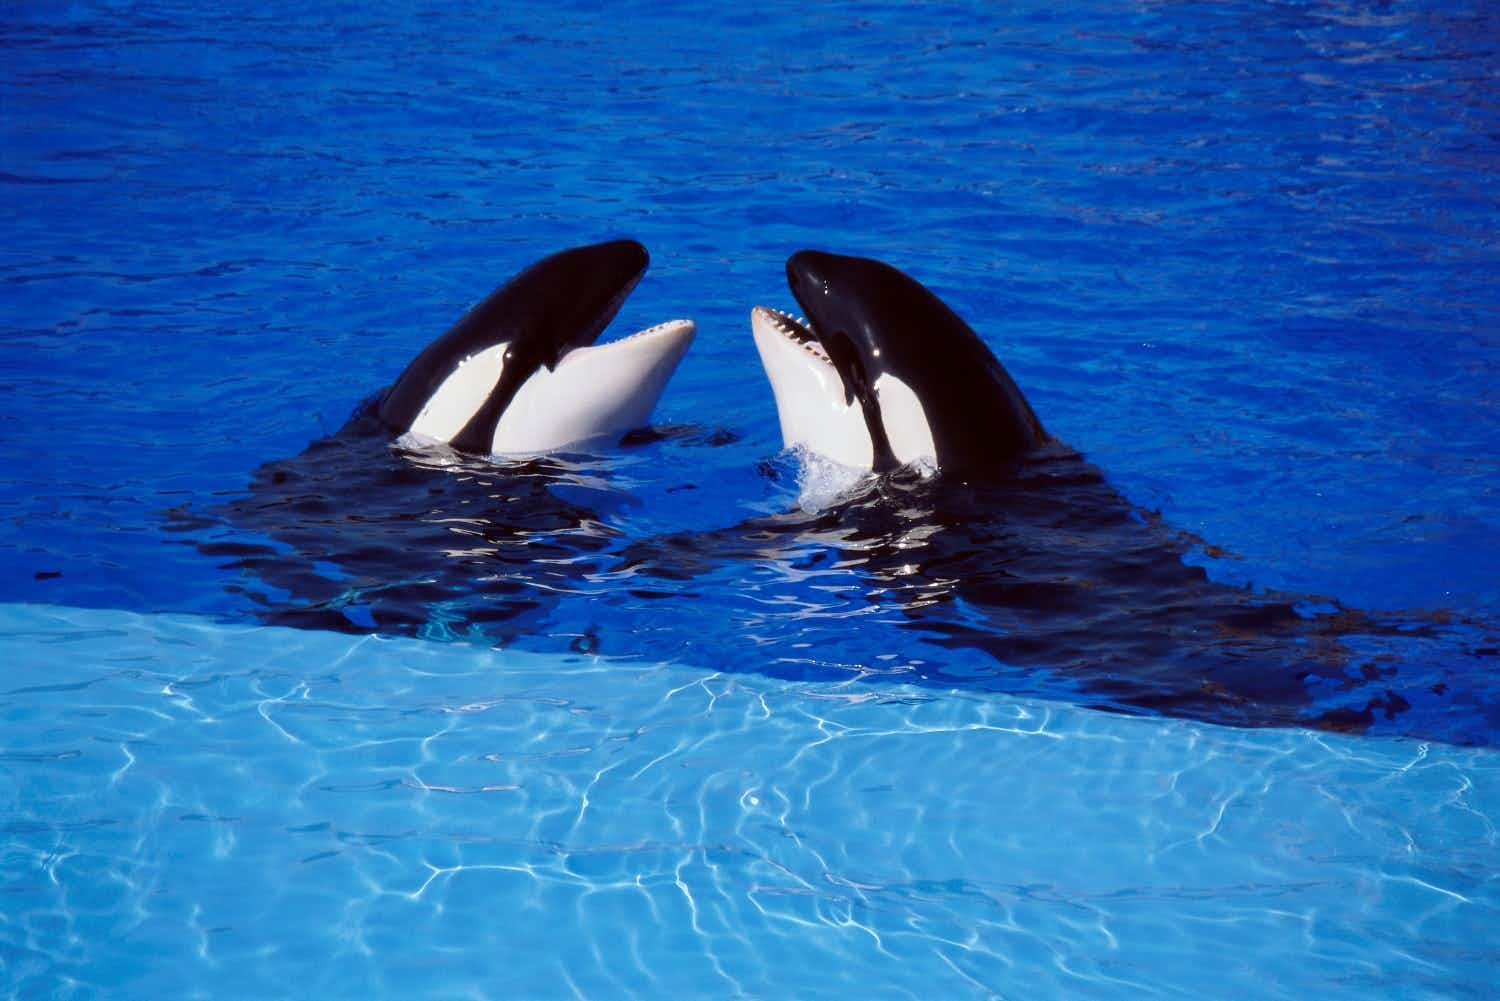 A major tour operator has decided to end trips to amusement parks with captive killer whales